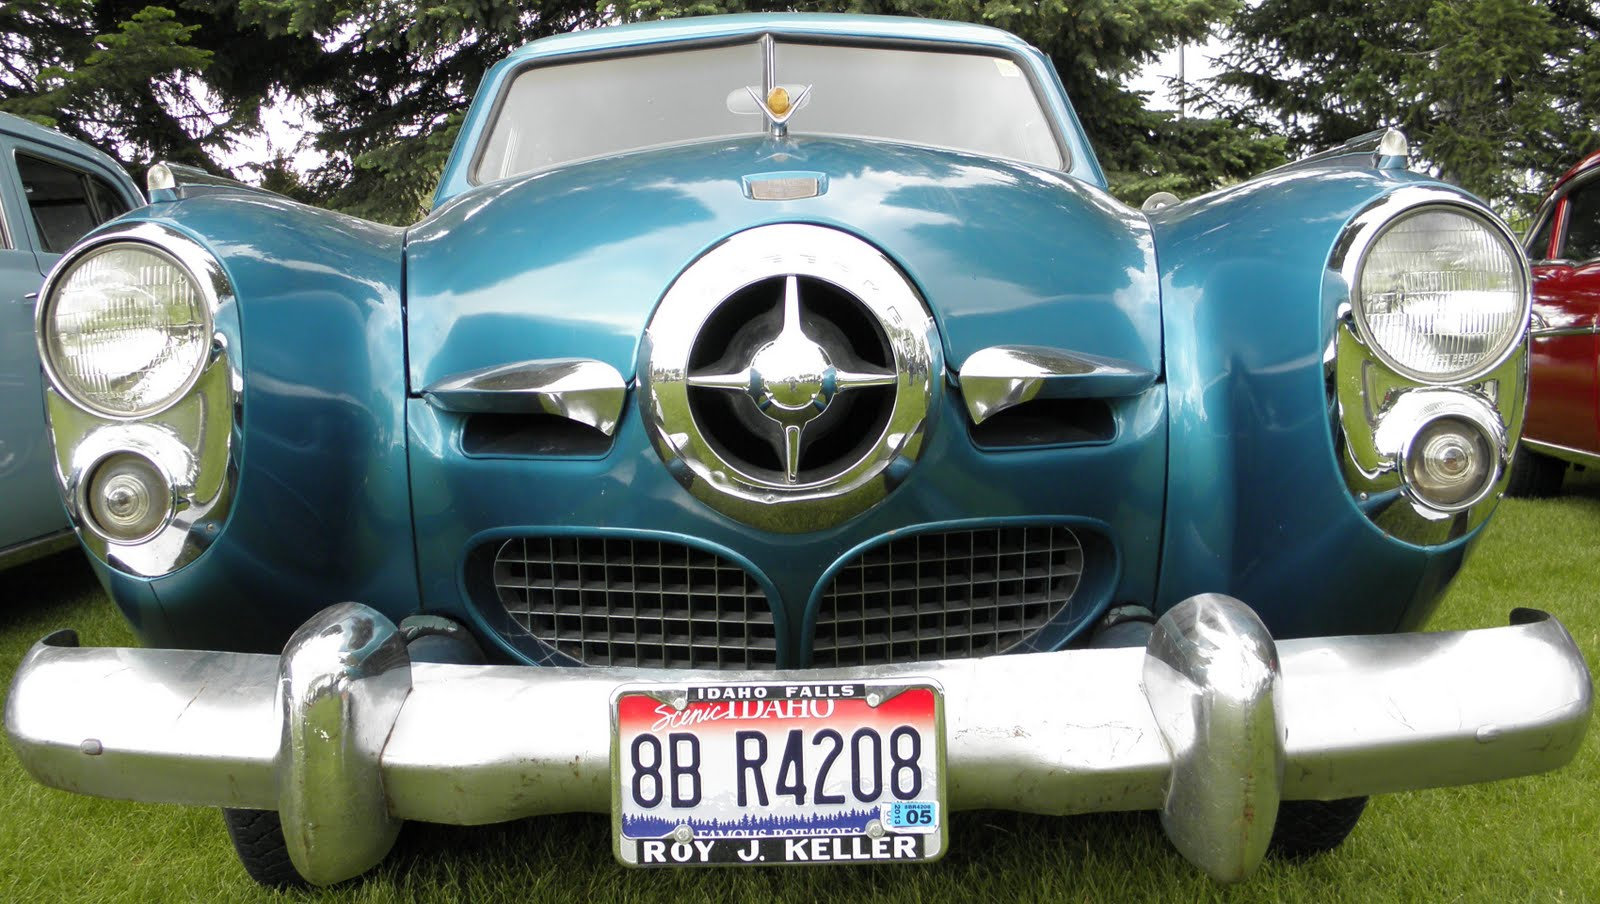 Generous Old Cars On Line Images - Classic Cars Ideas - boiq.info